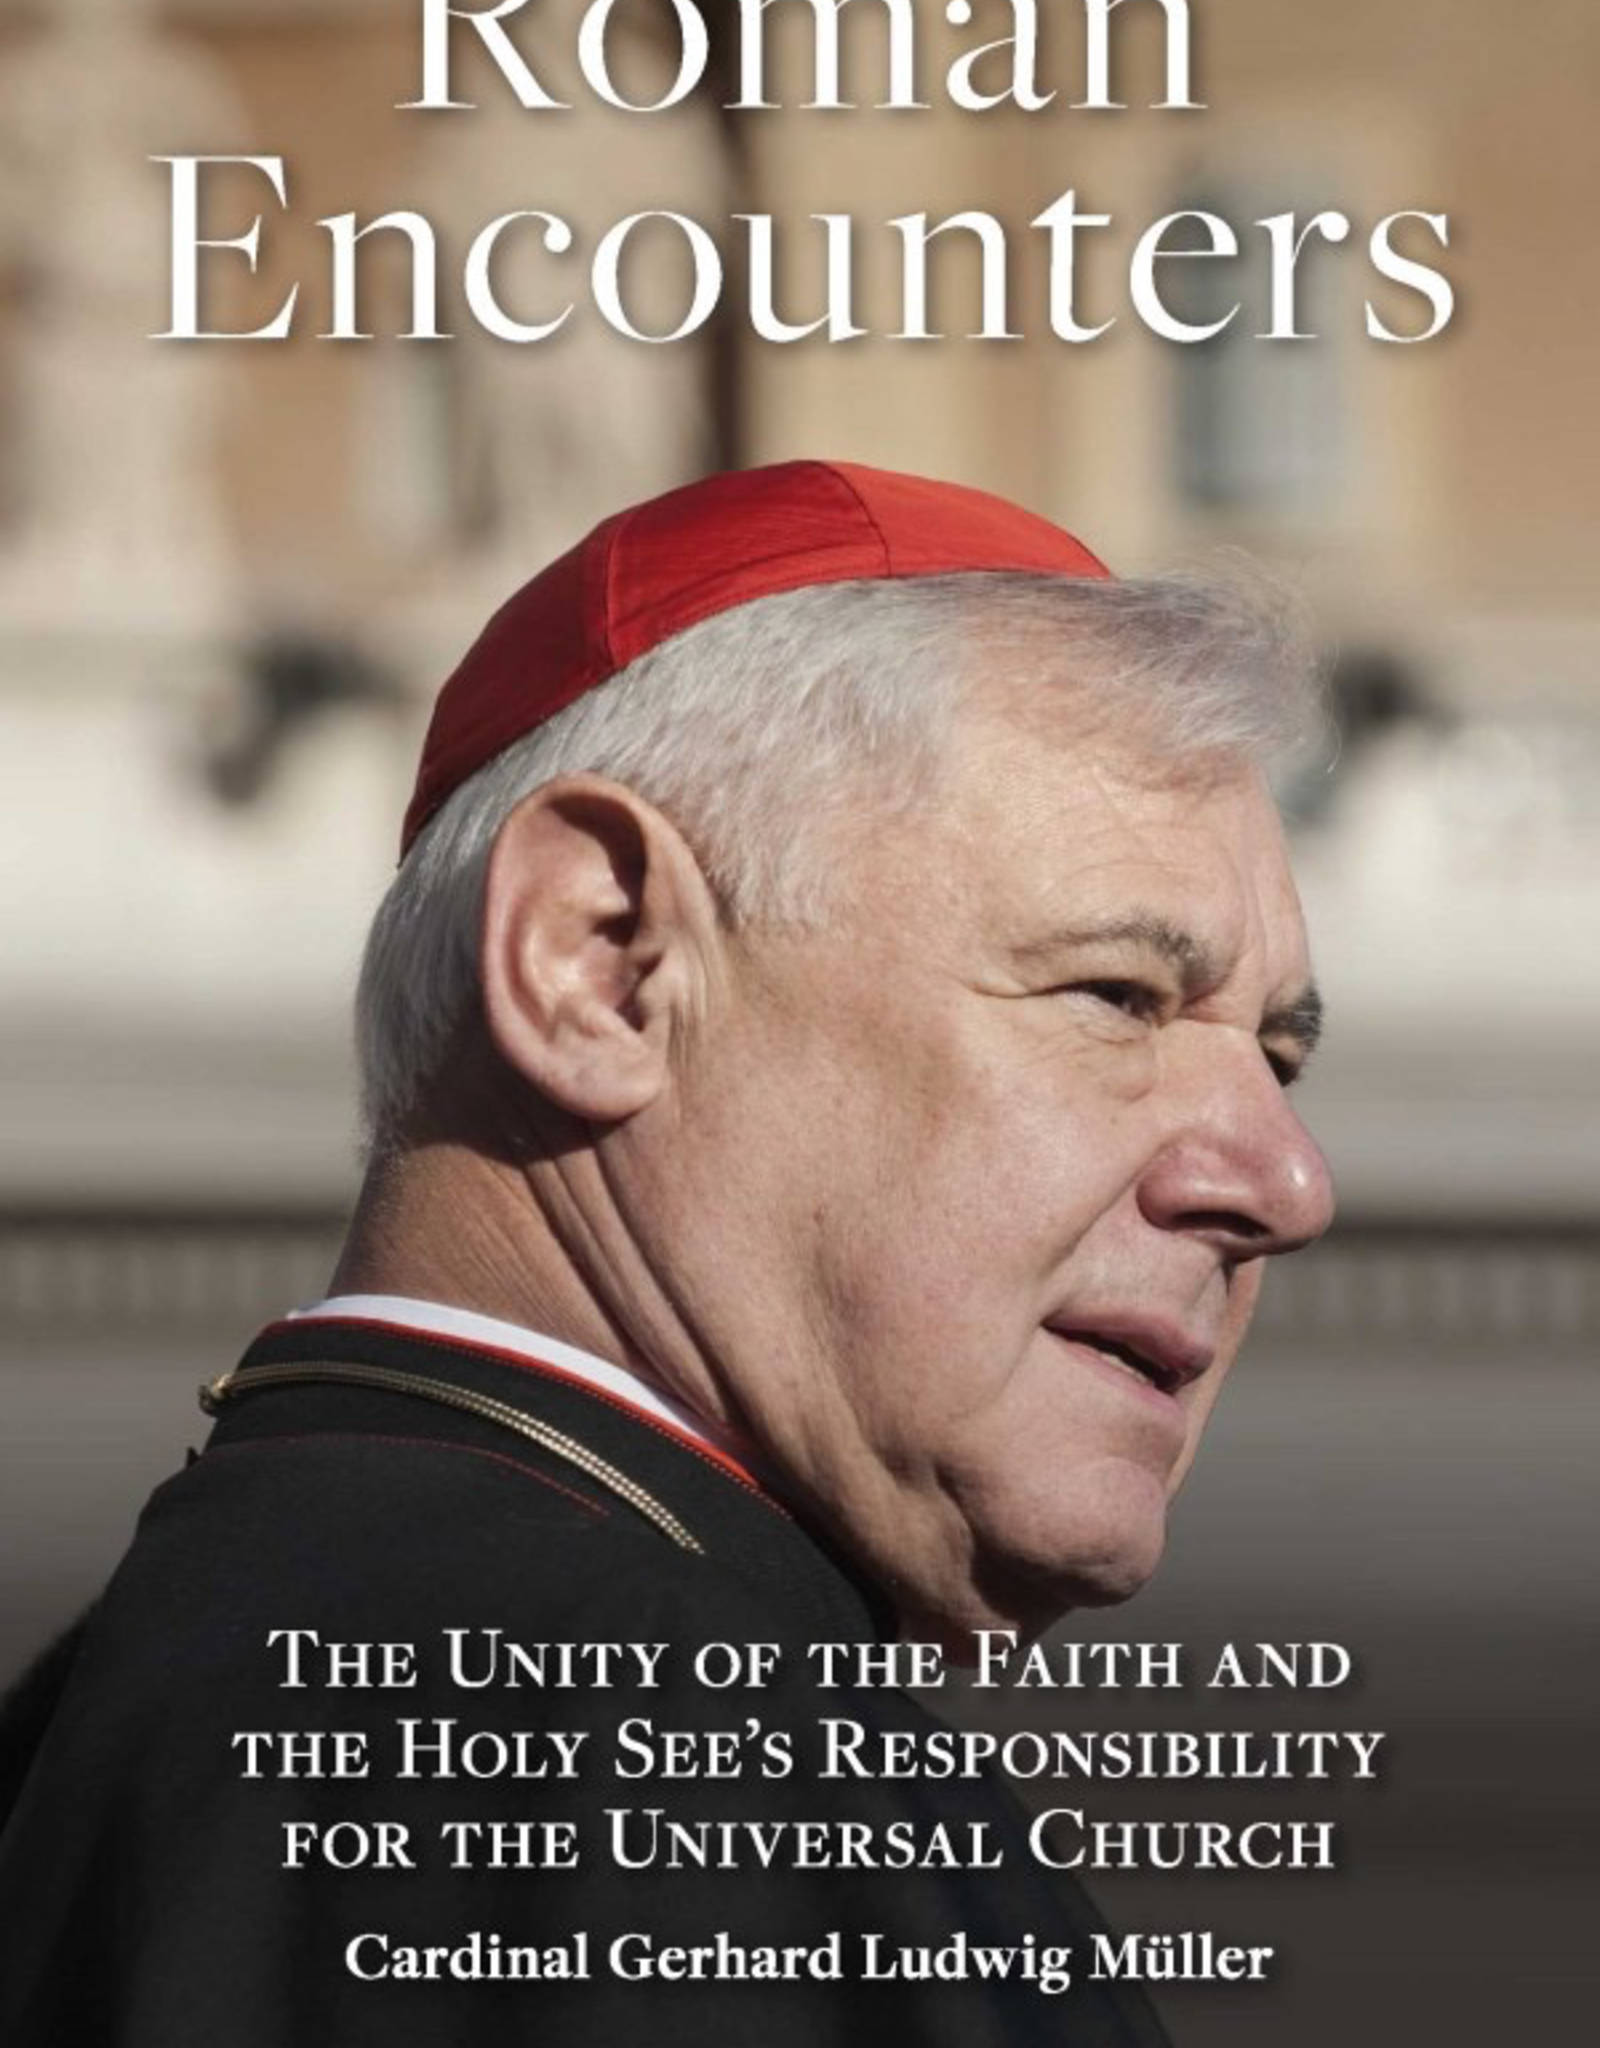 Sophia Institute Roman Encounters:  The Unity of the Faith and the Holy See‰Ûªs Responsibility for the Universal Church, by Cardinal Muller (paperback)